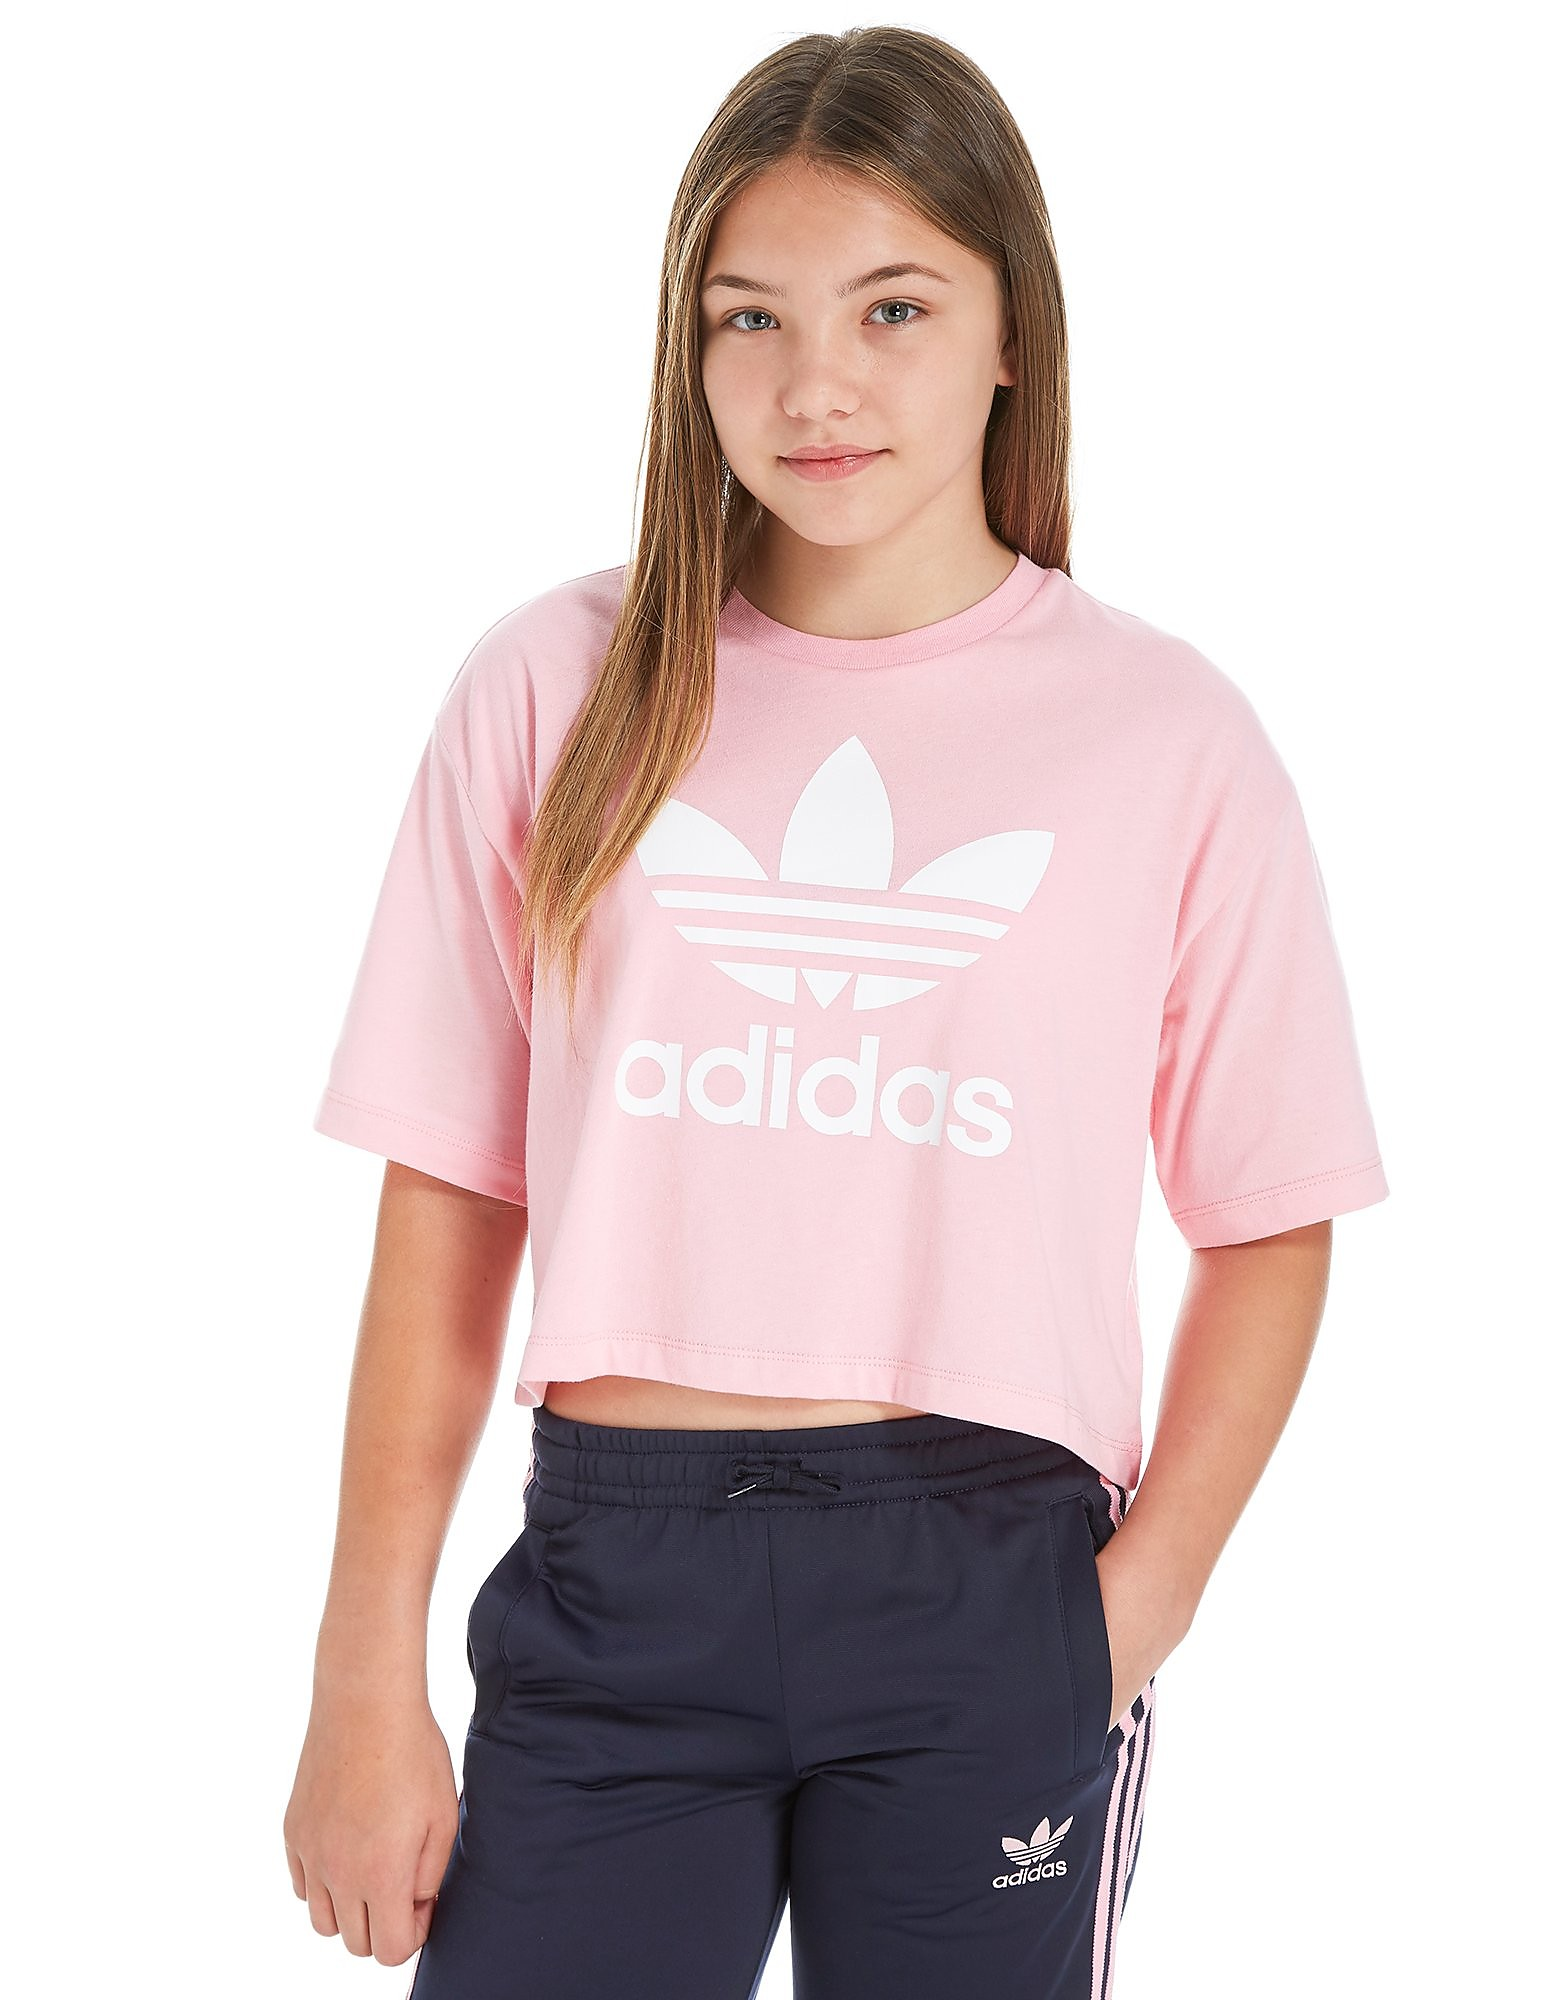 adidas Originals Girl's Trefoil Crop T-Shirt Junior